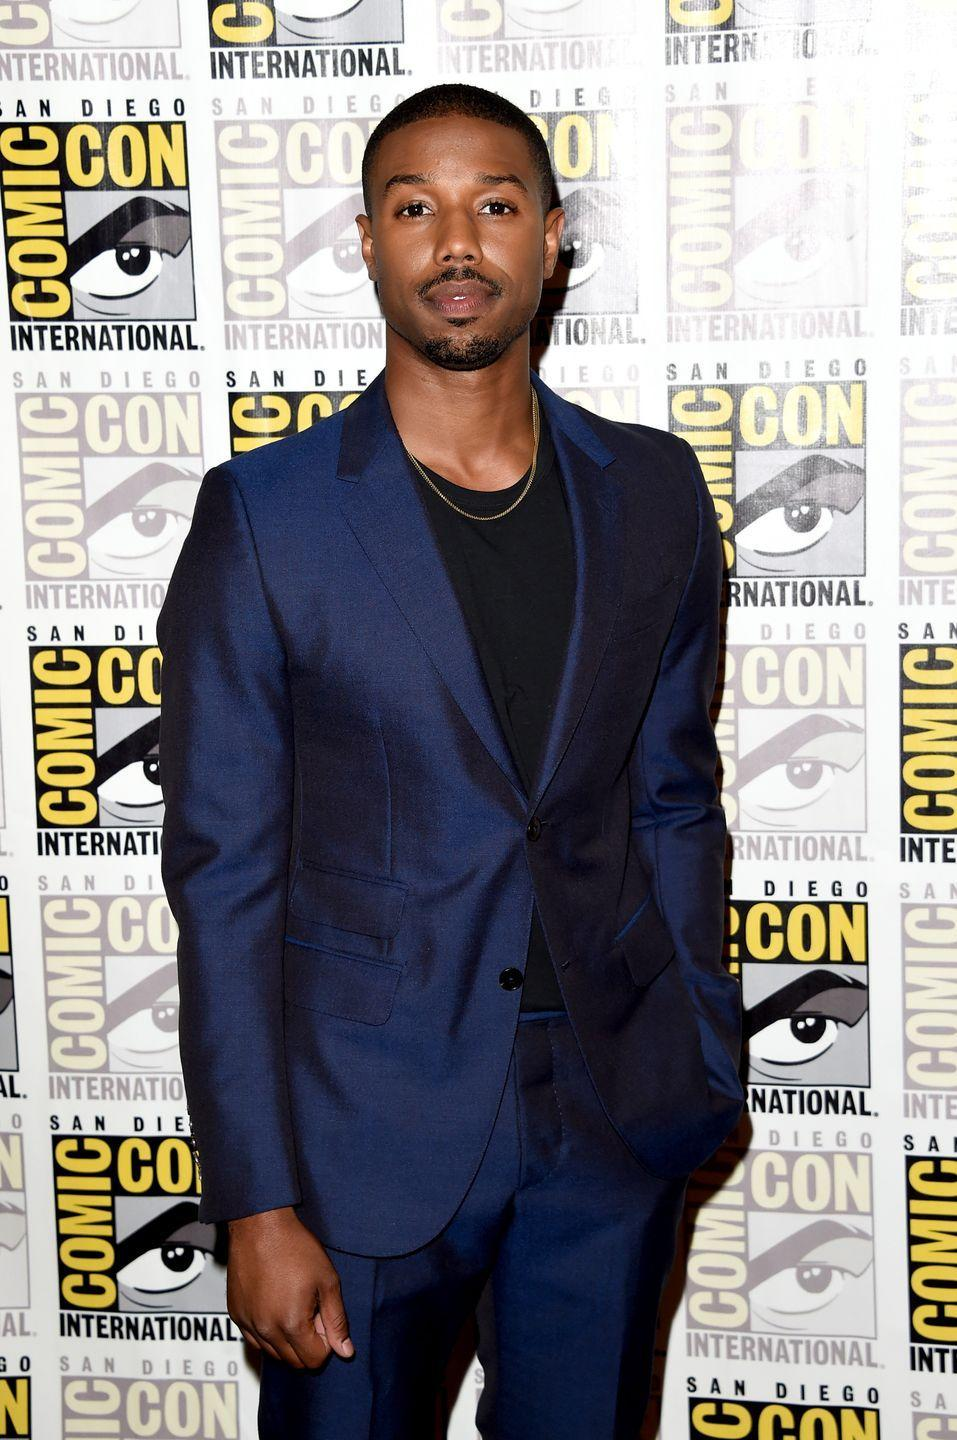 <p>Budding star Michael B. Jordan placed the <em>Rocky</em> franchise on his back when he signed on to lead the next generation of the story in <em>Creed</em>. The actor was already part of Marvel's <em>Fantastic Four </em>franchise before signing onto the film series.</p>